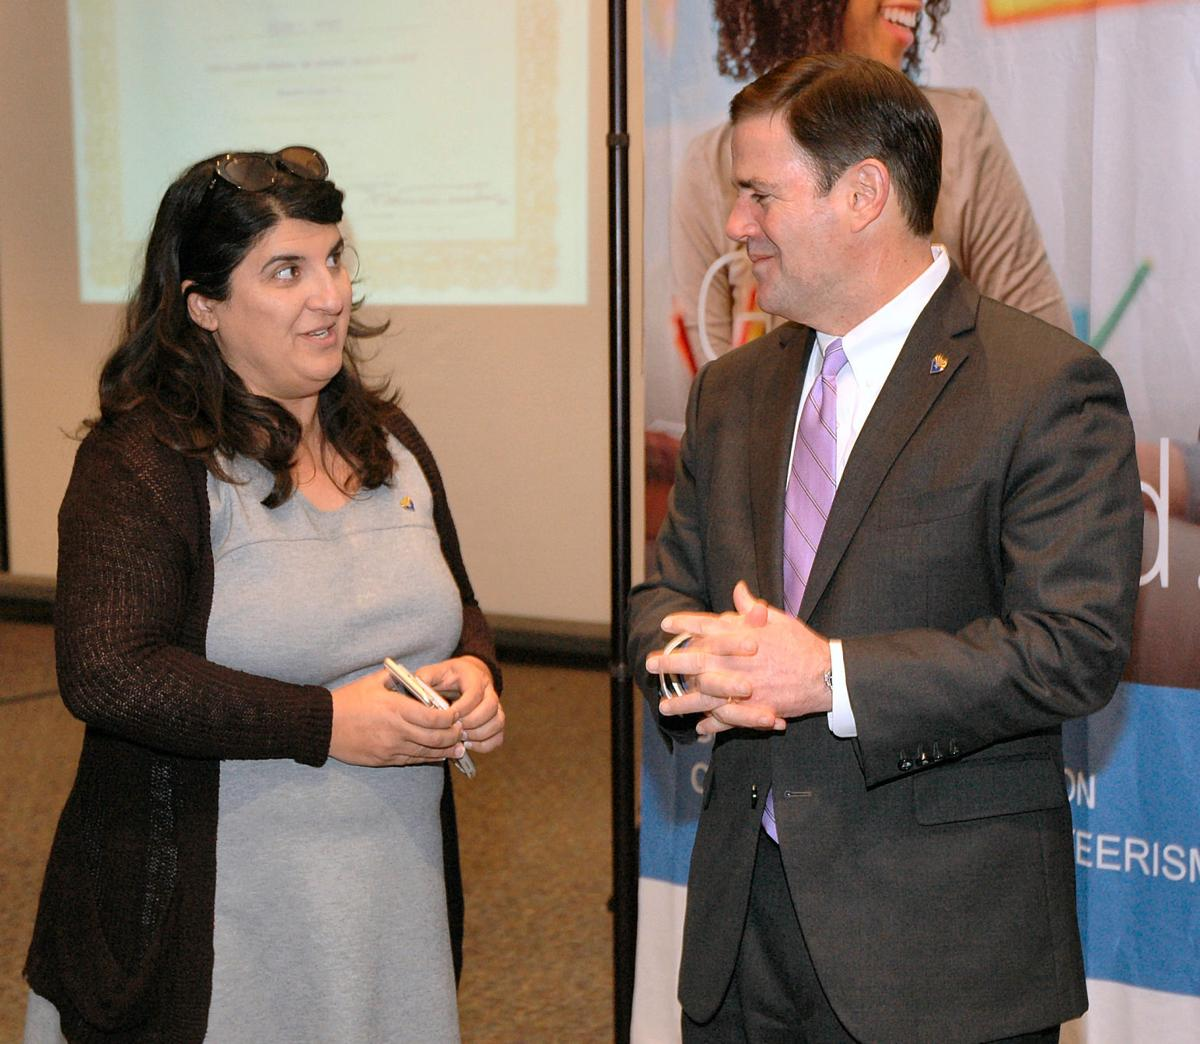 Ducey and Dawn Wallace